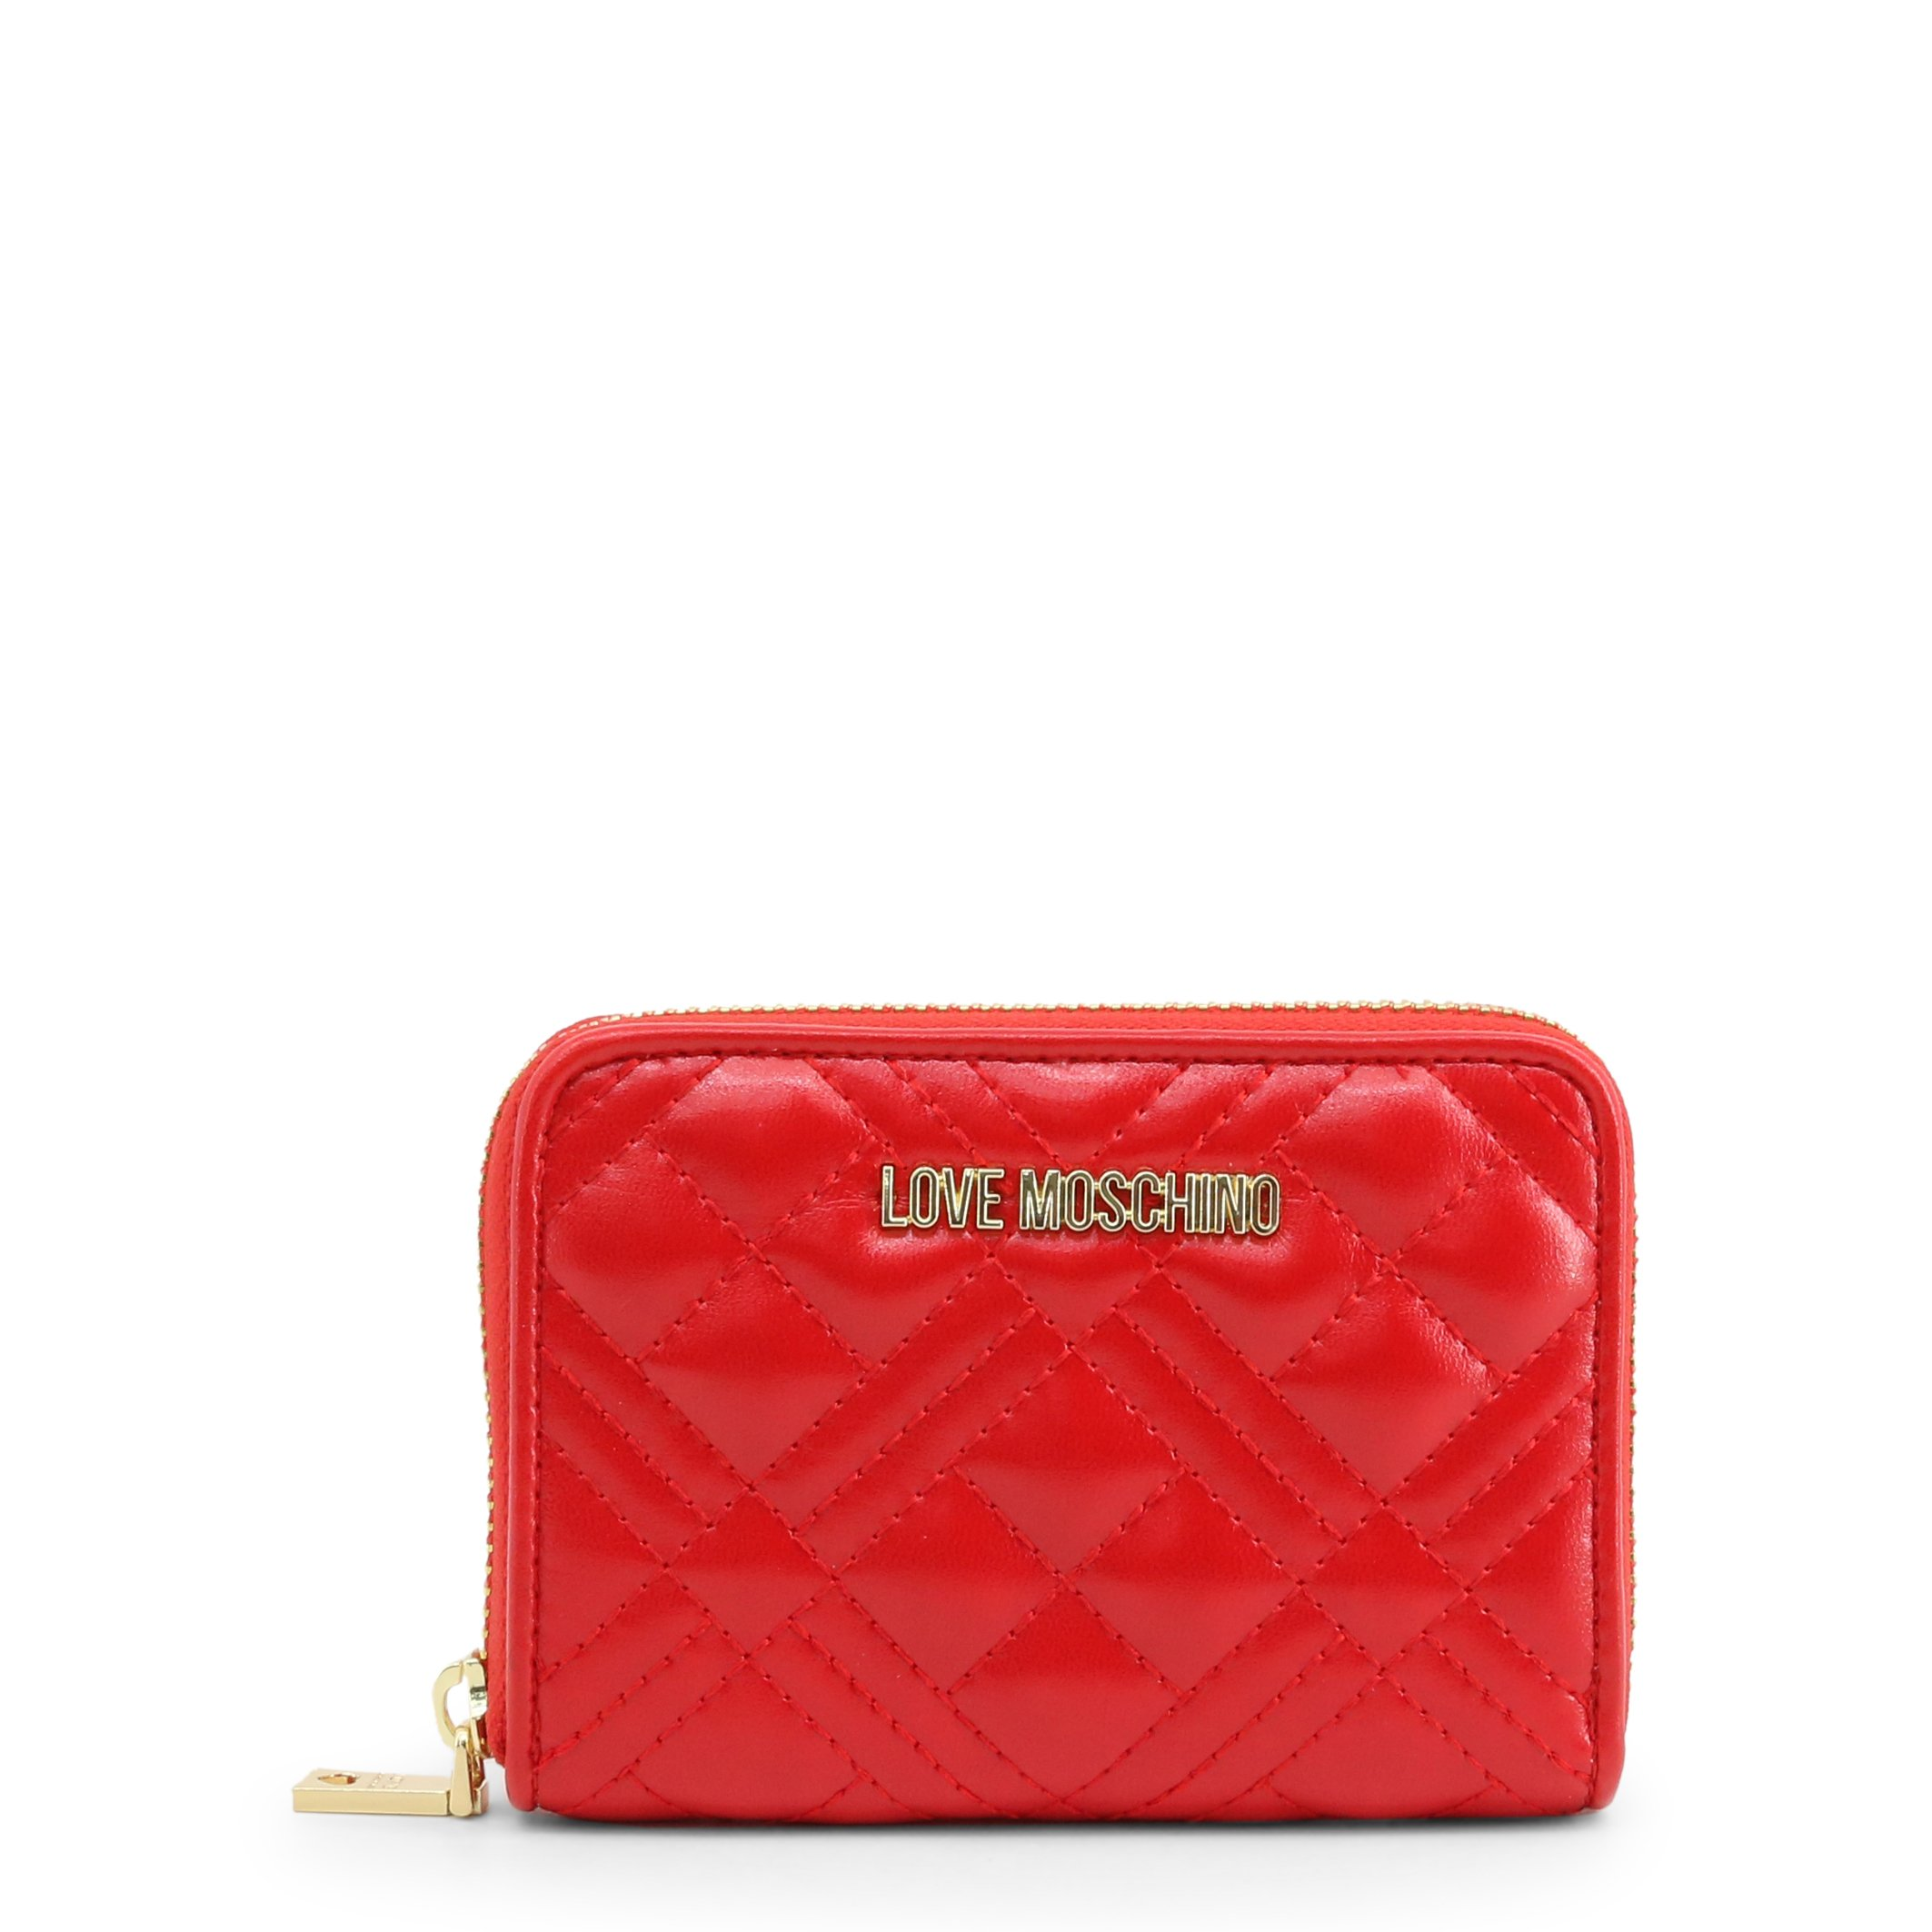 Love Moschino Women's Wallet Various Colours JC5602PP1BLA - red NOSIZE